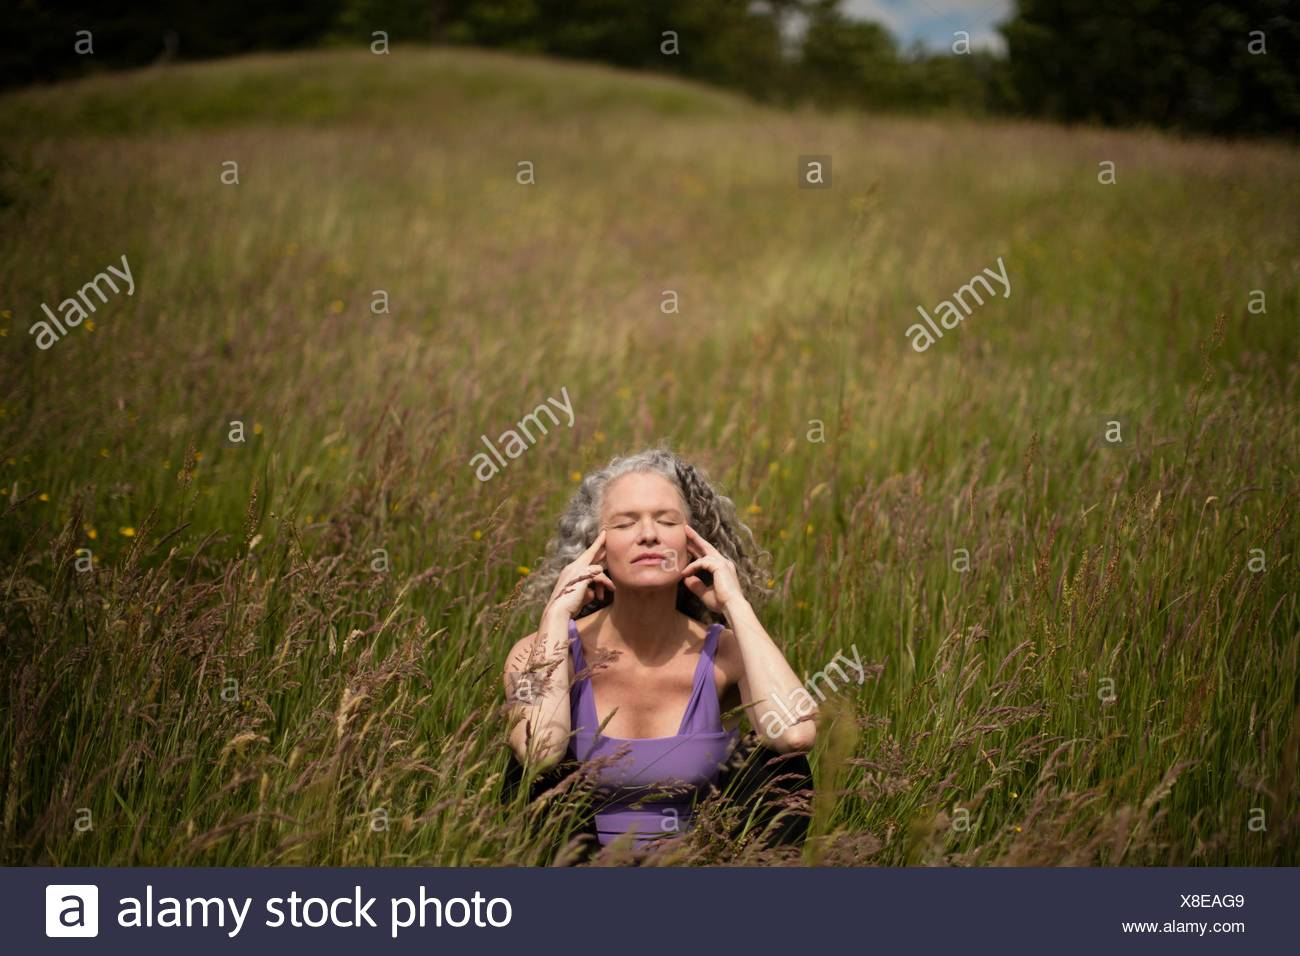 Mature woman with fingers on her temples sitting in long grass meditating - Stock Image